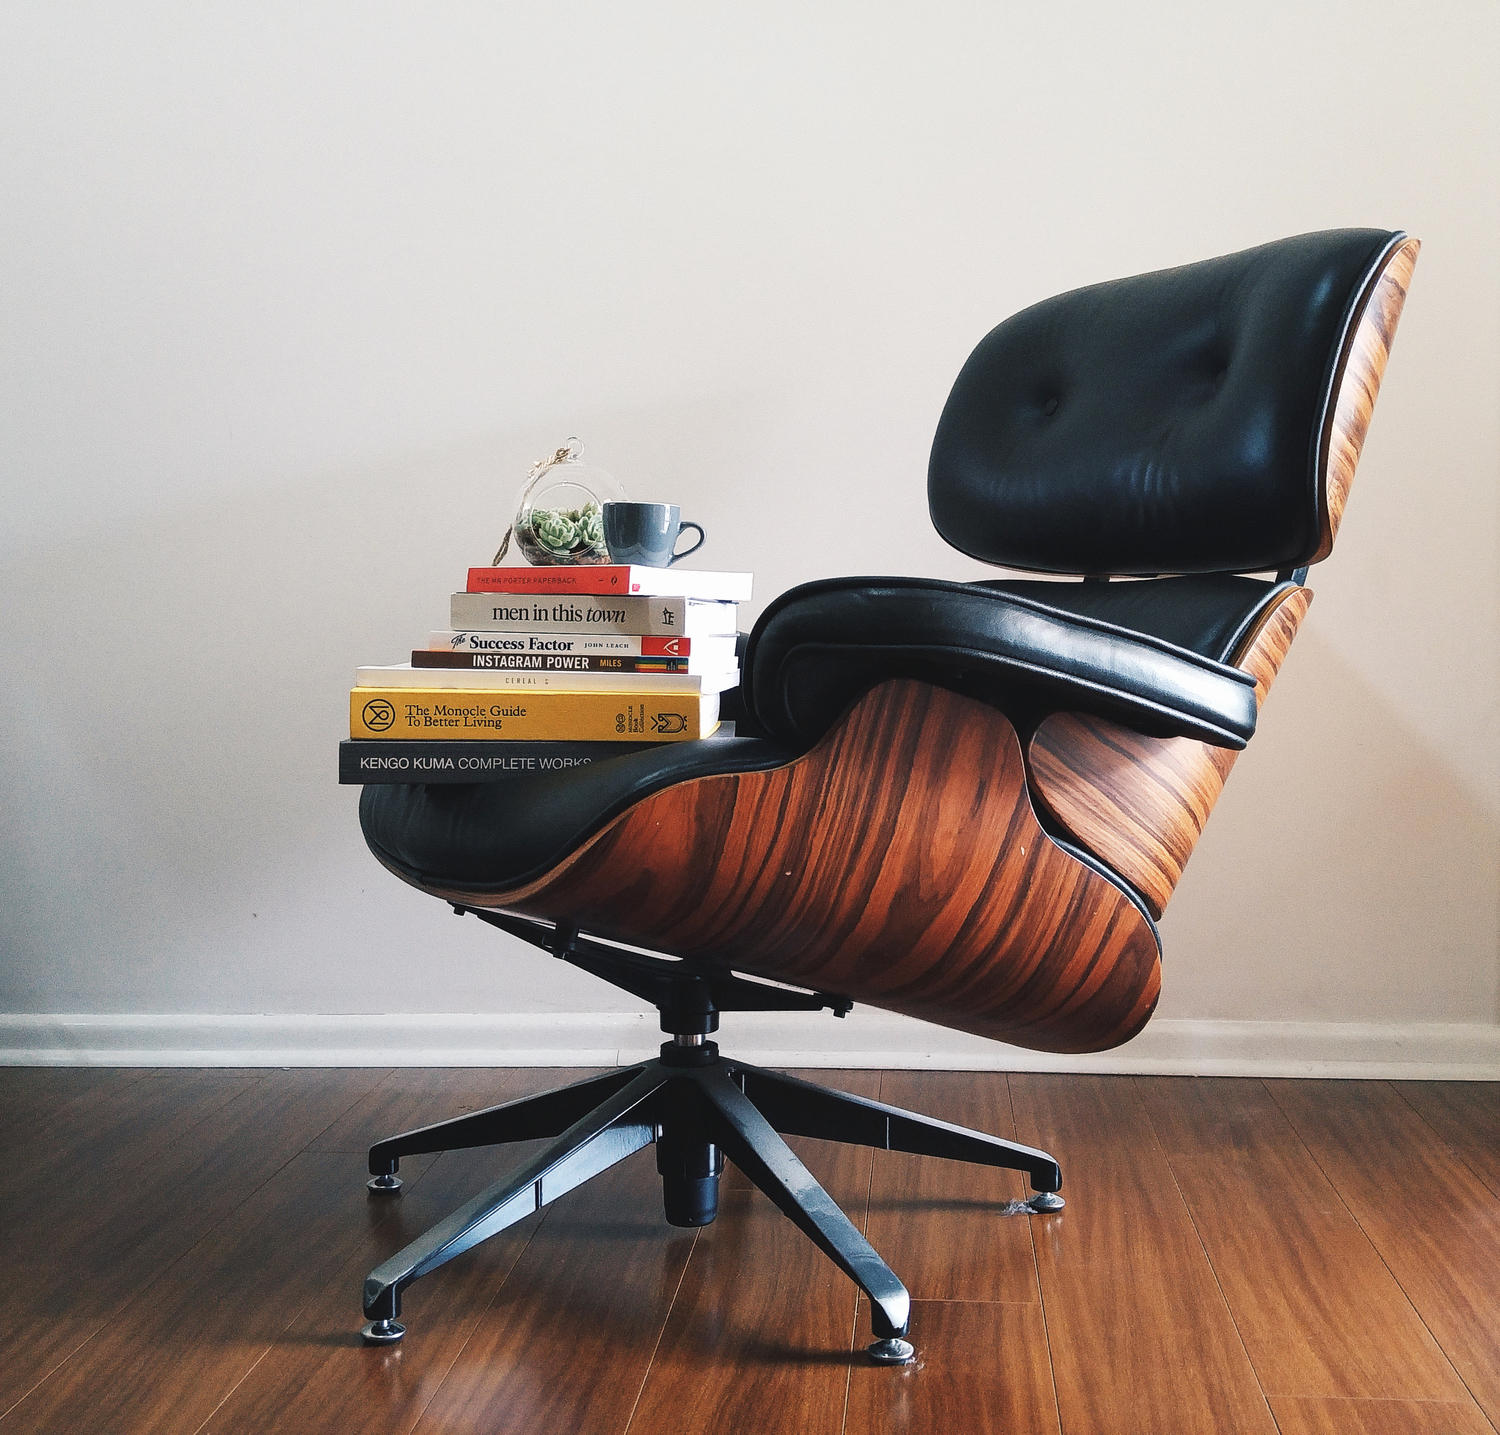 12 Coffee Table Books For The Modern Man Mr Gumbatron